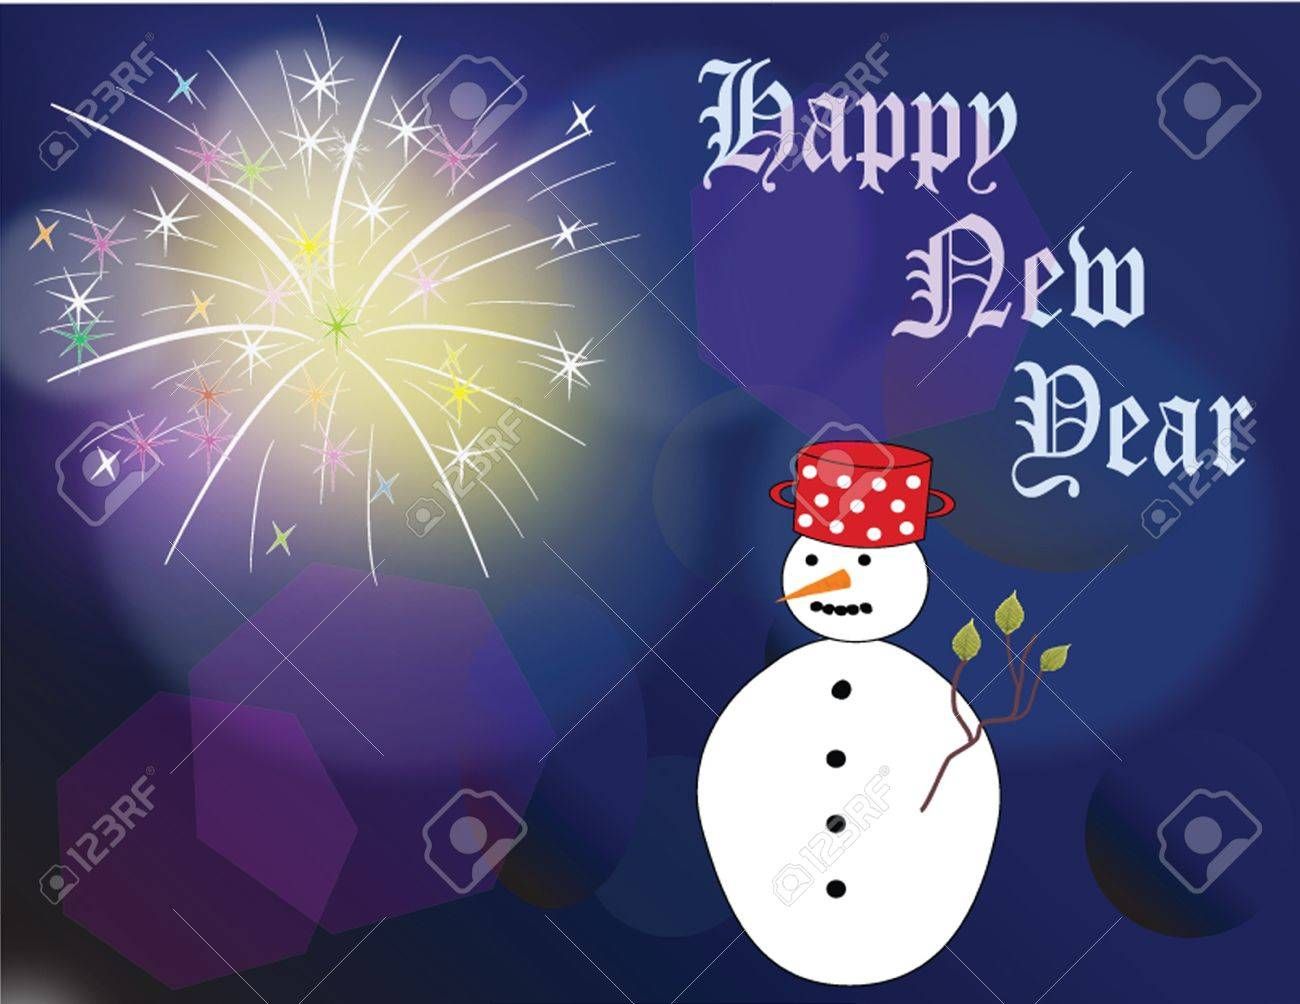 New  Year scard on blue background with fireworks and snowman Stock Vector - 17273073